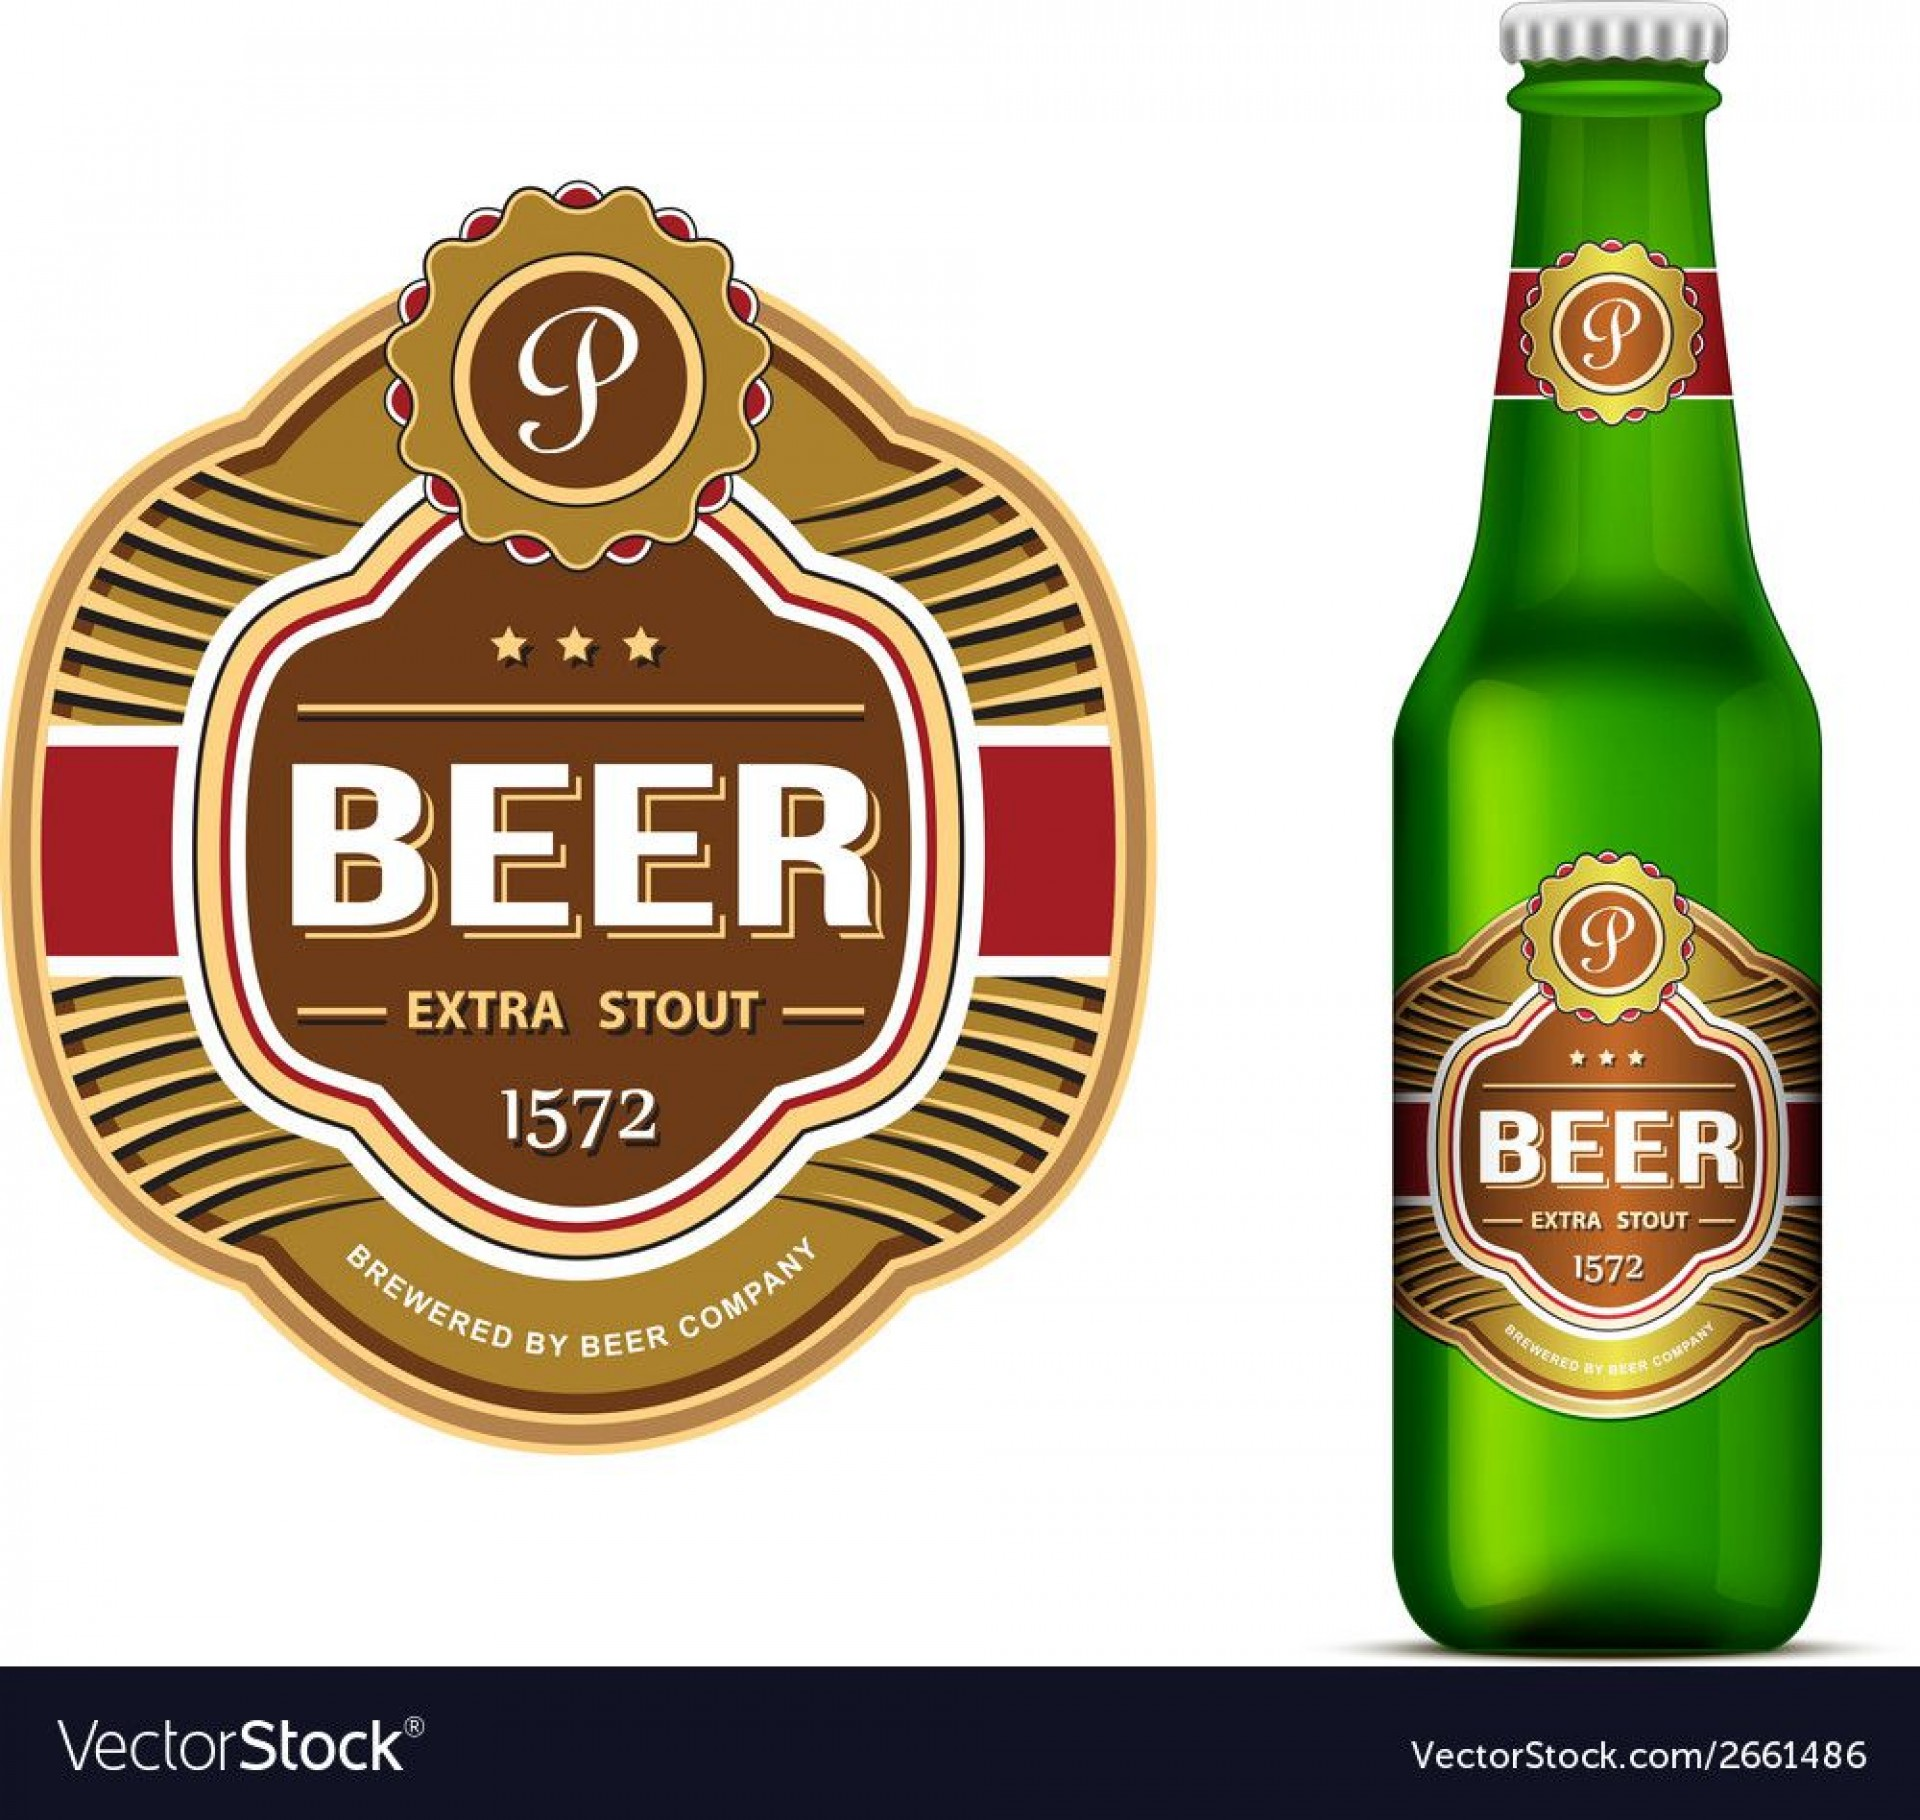 007 Exceptional Beer Bottle Label Template Picture  Free Dimension Word1920